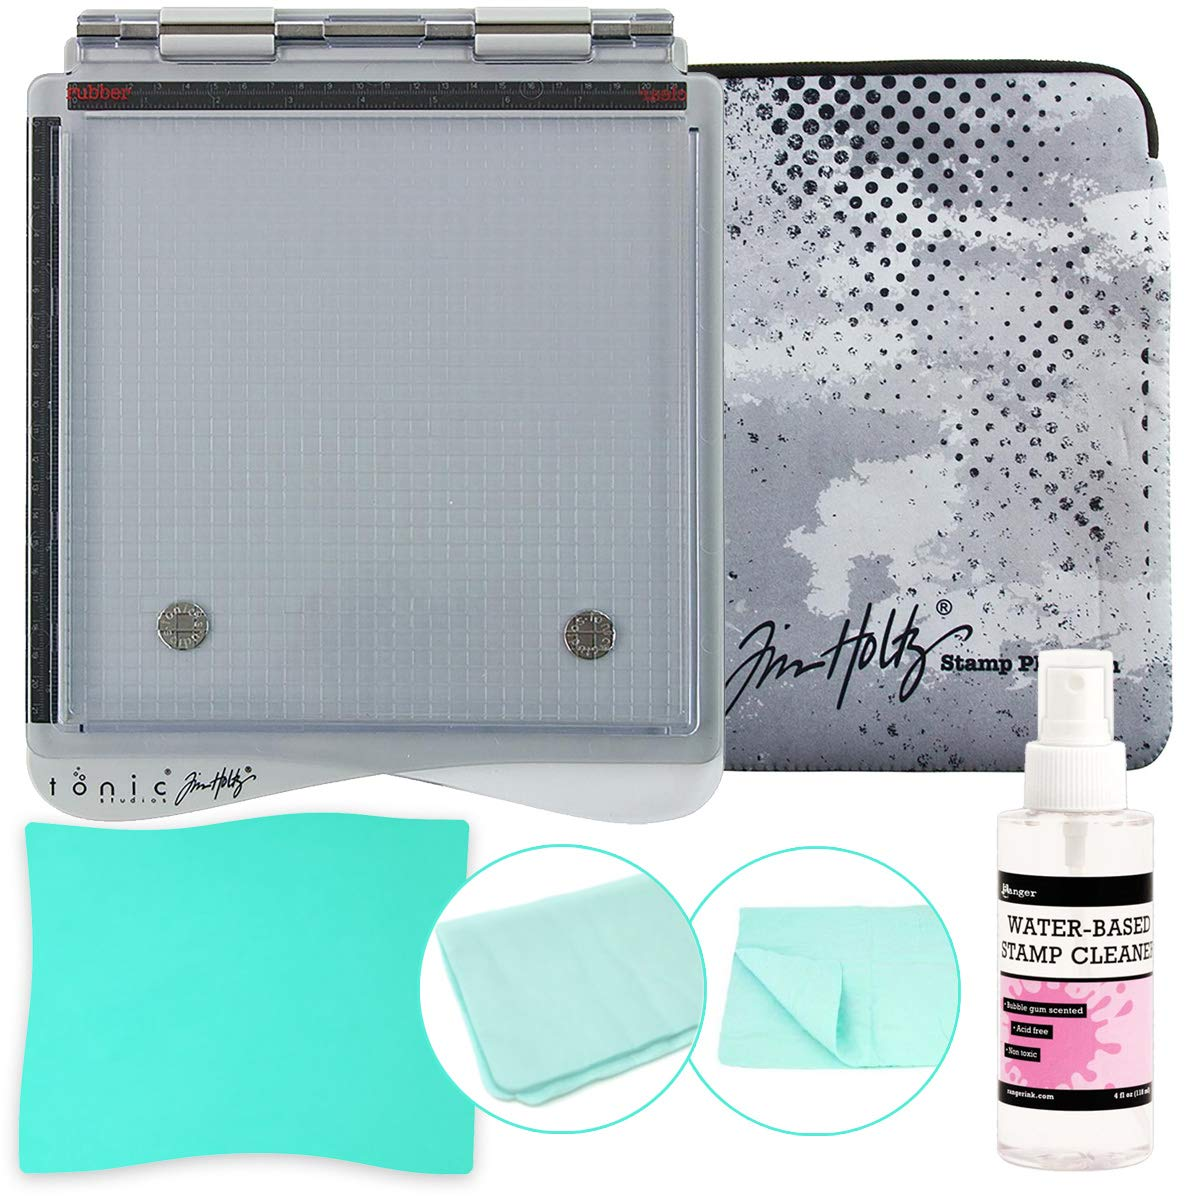 Tonic Studios Tim Holtz Stamp Platform (1707E), Platform Sleeve, Ranger Inkssentials Water-Based Stamp Cleaner 4-Ounce, Pixiss XL Stamp Cleaning Shammy 17-inch x 12-inch